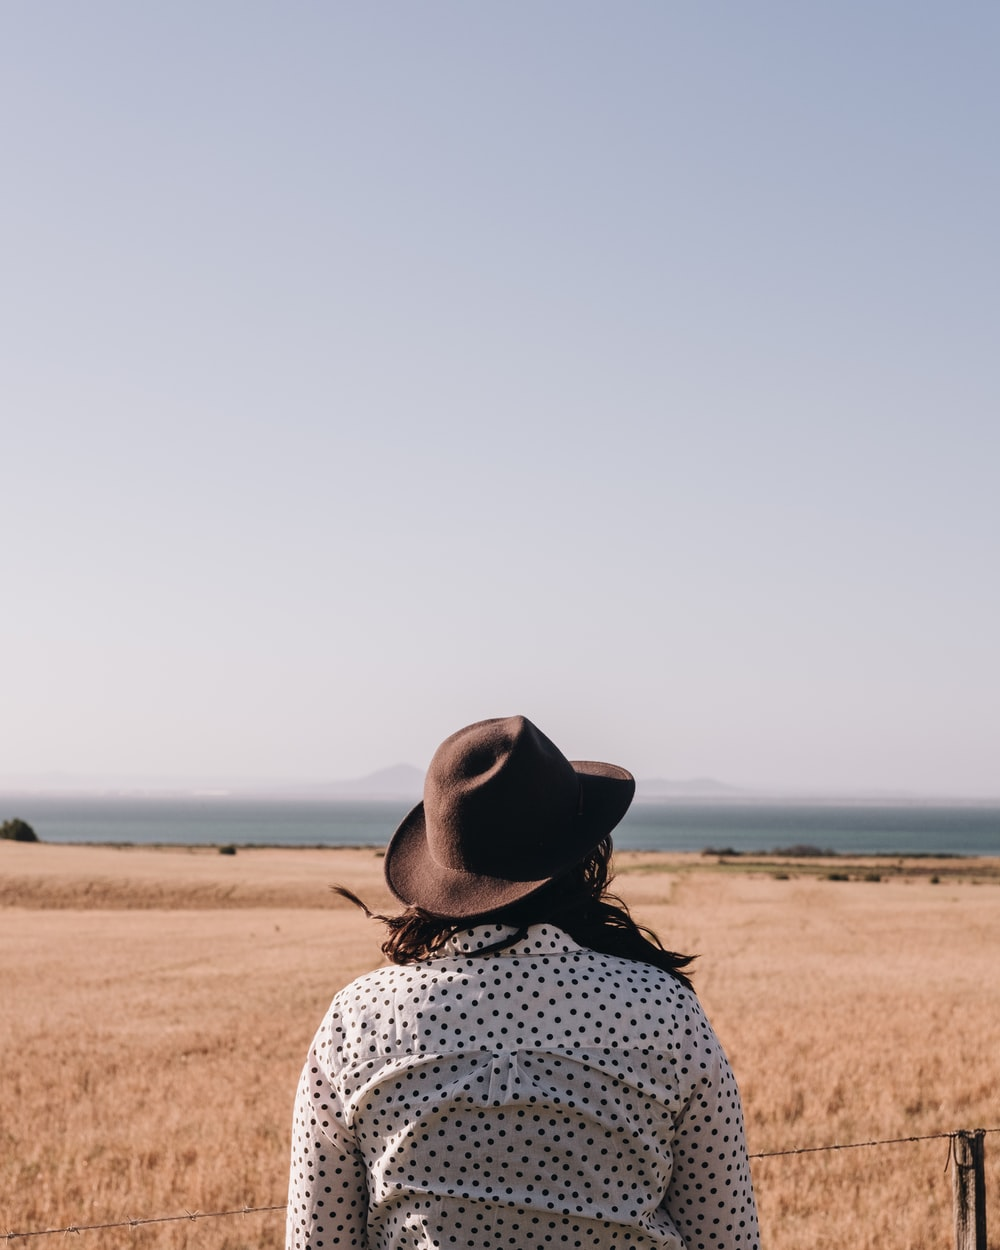 person in black and white polka dot top and brown hat